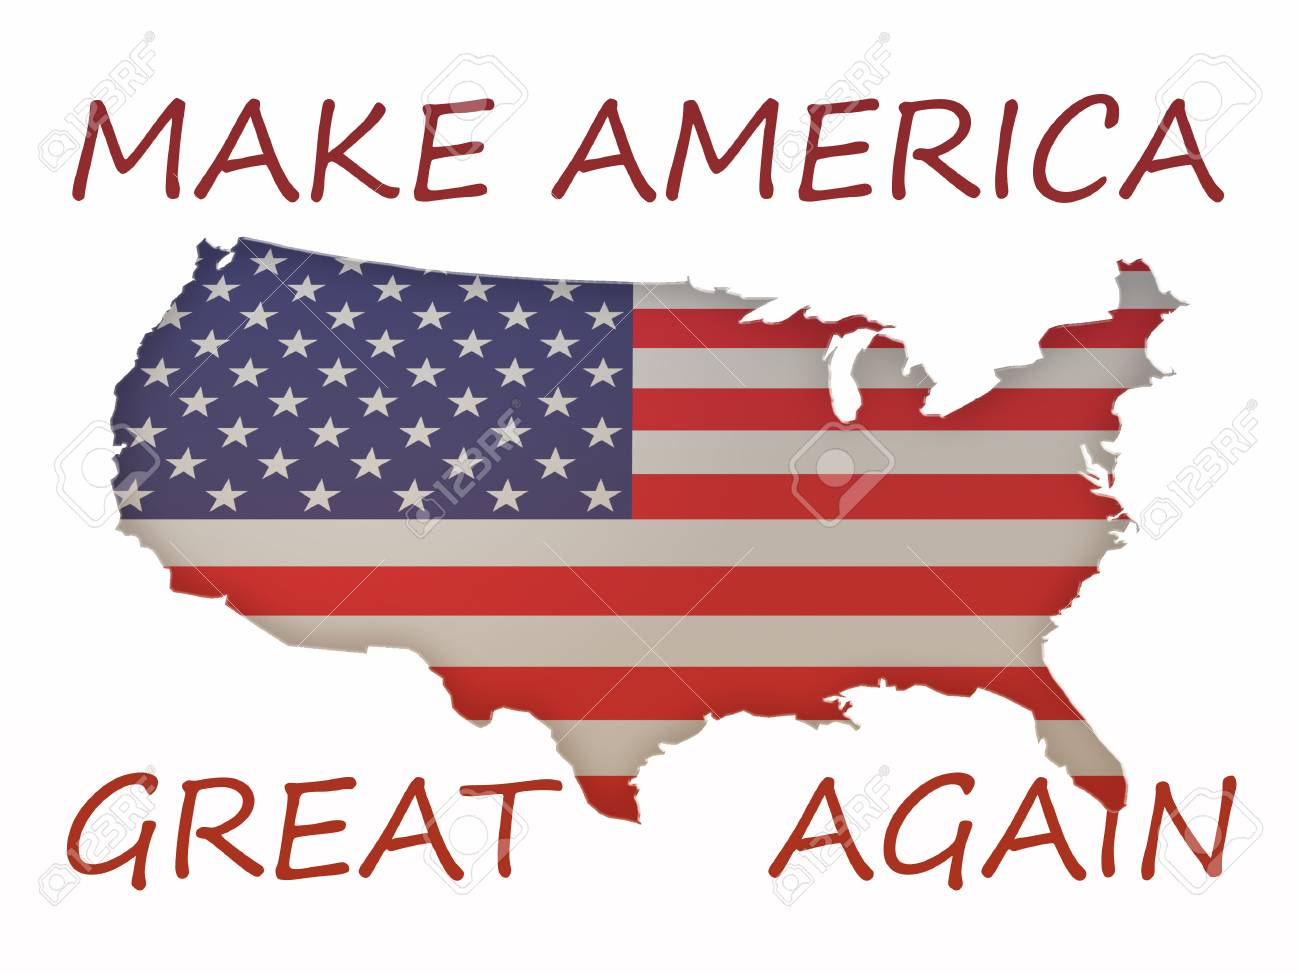 3d Stars And Stripes Flag Us Map With Political Slogan Make America - American-flag-us-map